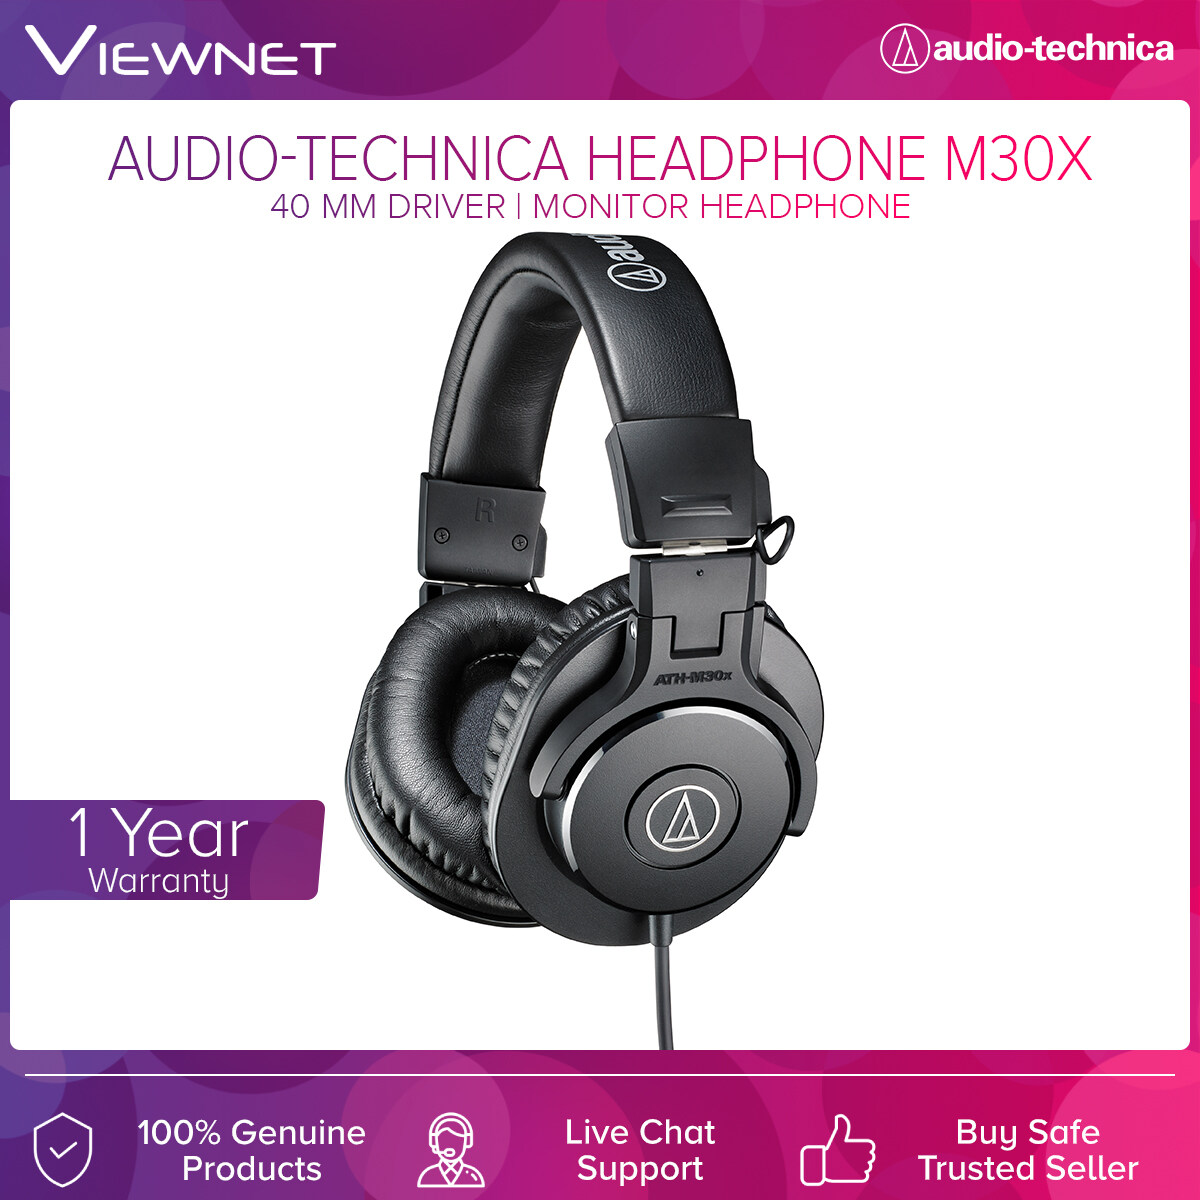 Audio-Technica Professional Monitor Headphones ATH-M30X with 40mm Driver, Copper-Clad Aluminum Wire, 3 Meter Length Cable, 15 - 22,000 Hz